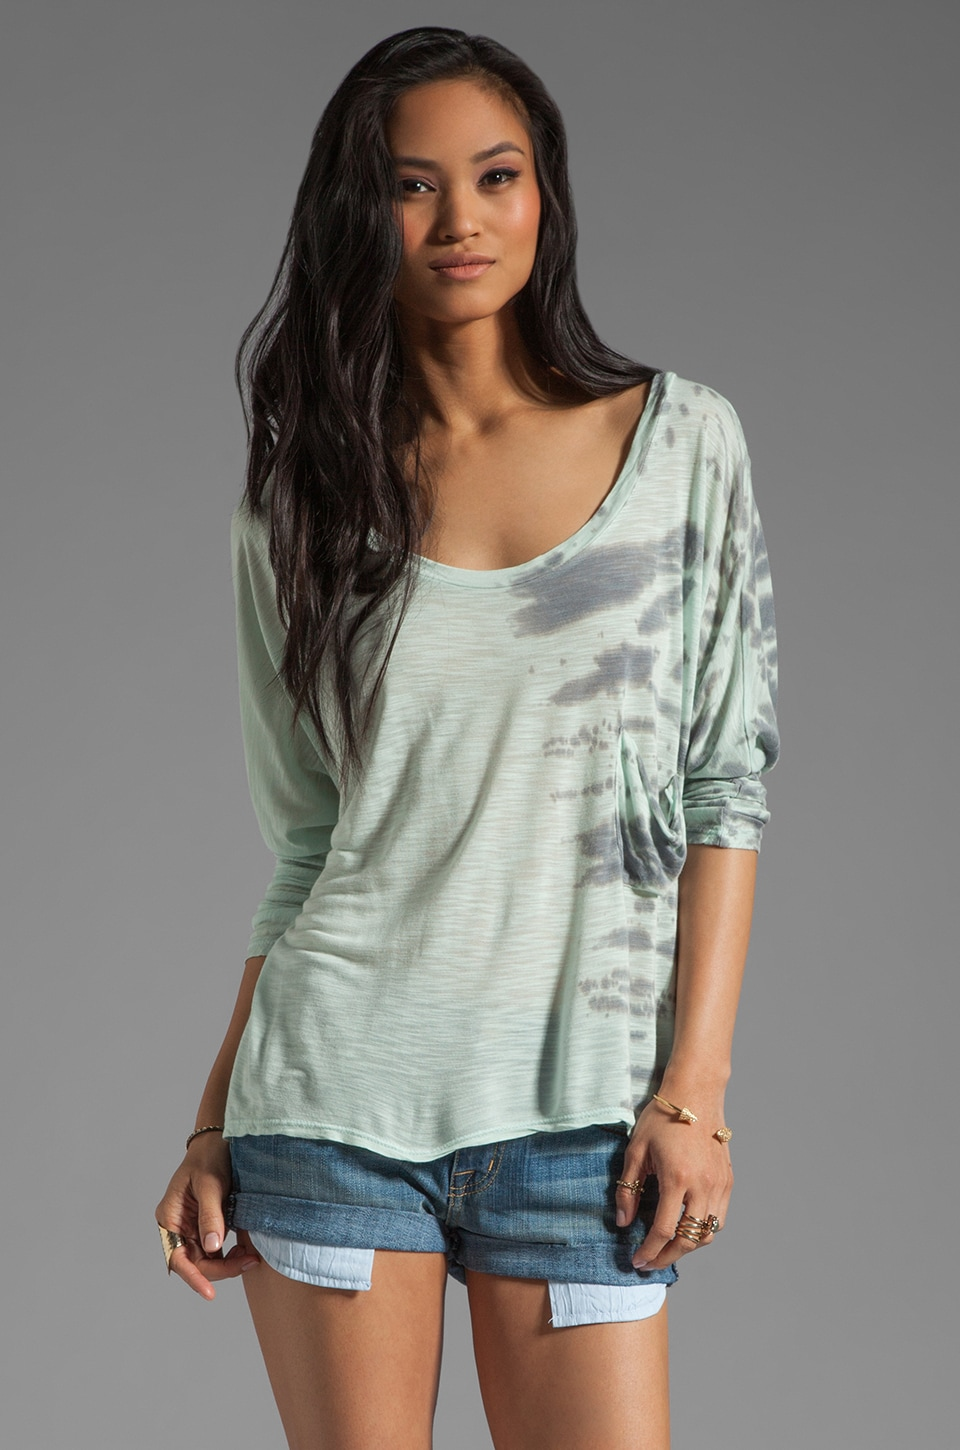 Blue Life Marteeni Top in Ocean Tie Dye